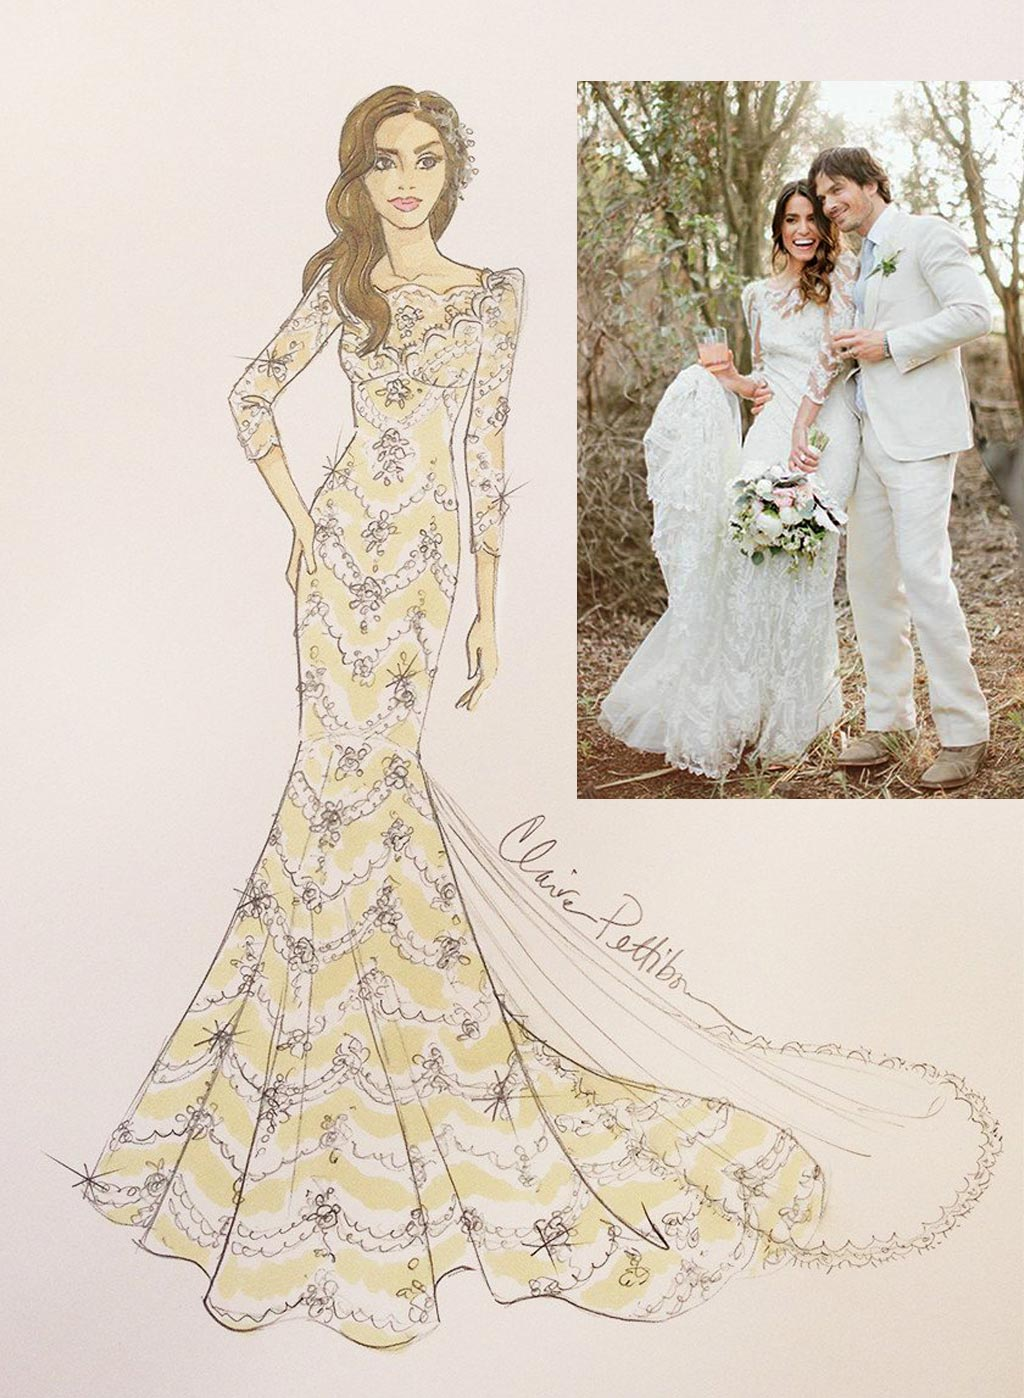 Sketch Custom Gown for Nikki Reed| Inset: Nikki Reed & Ian Somerhalder | Photo: Glass Jar Photography